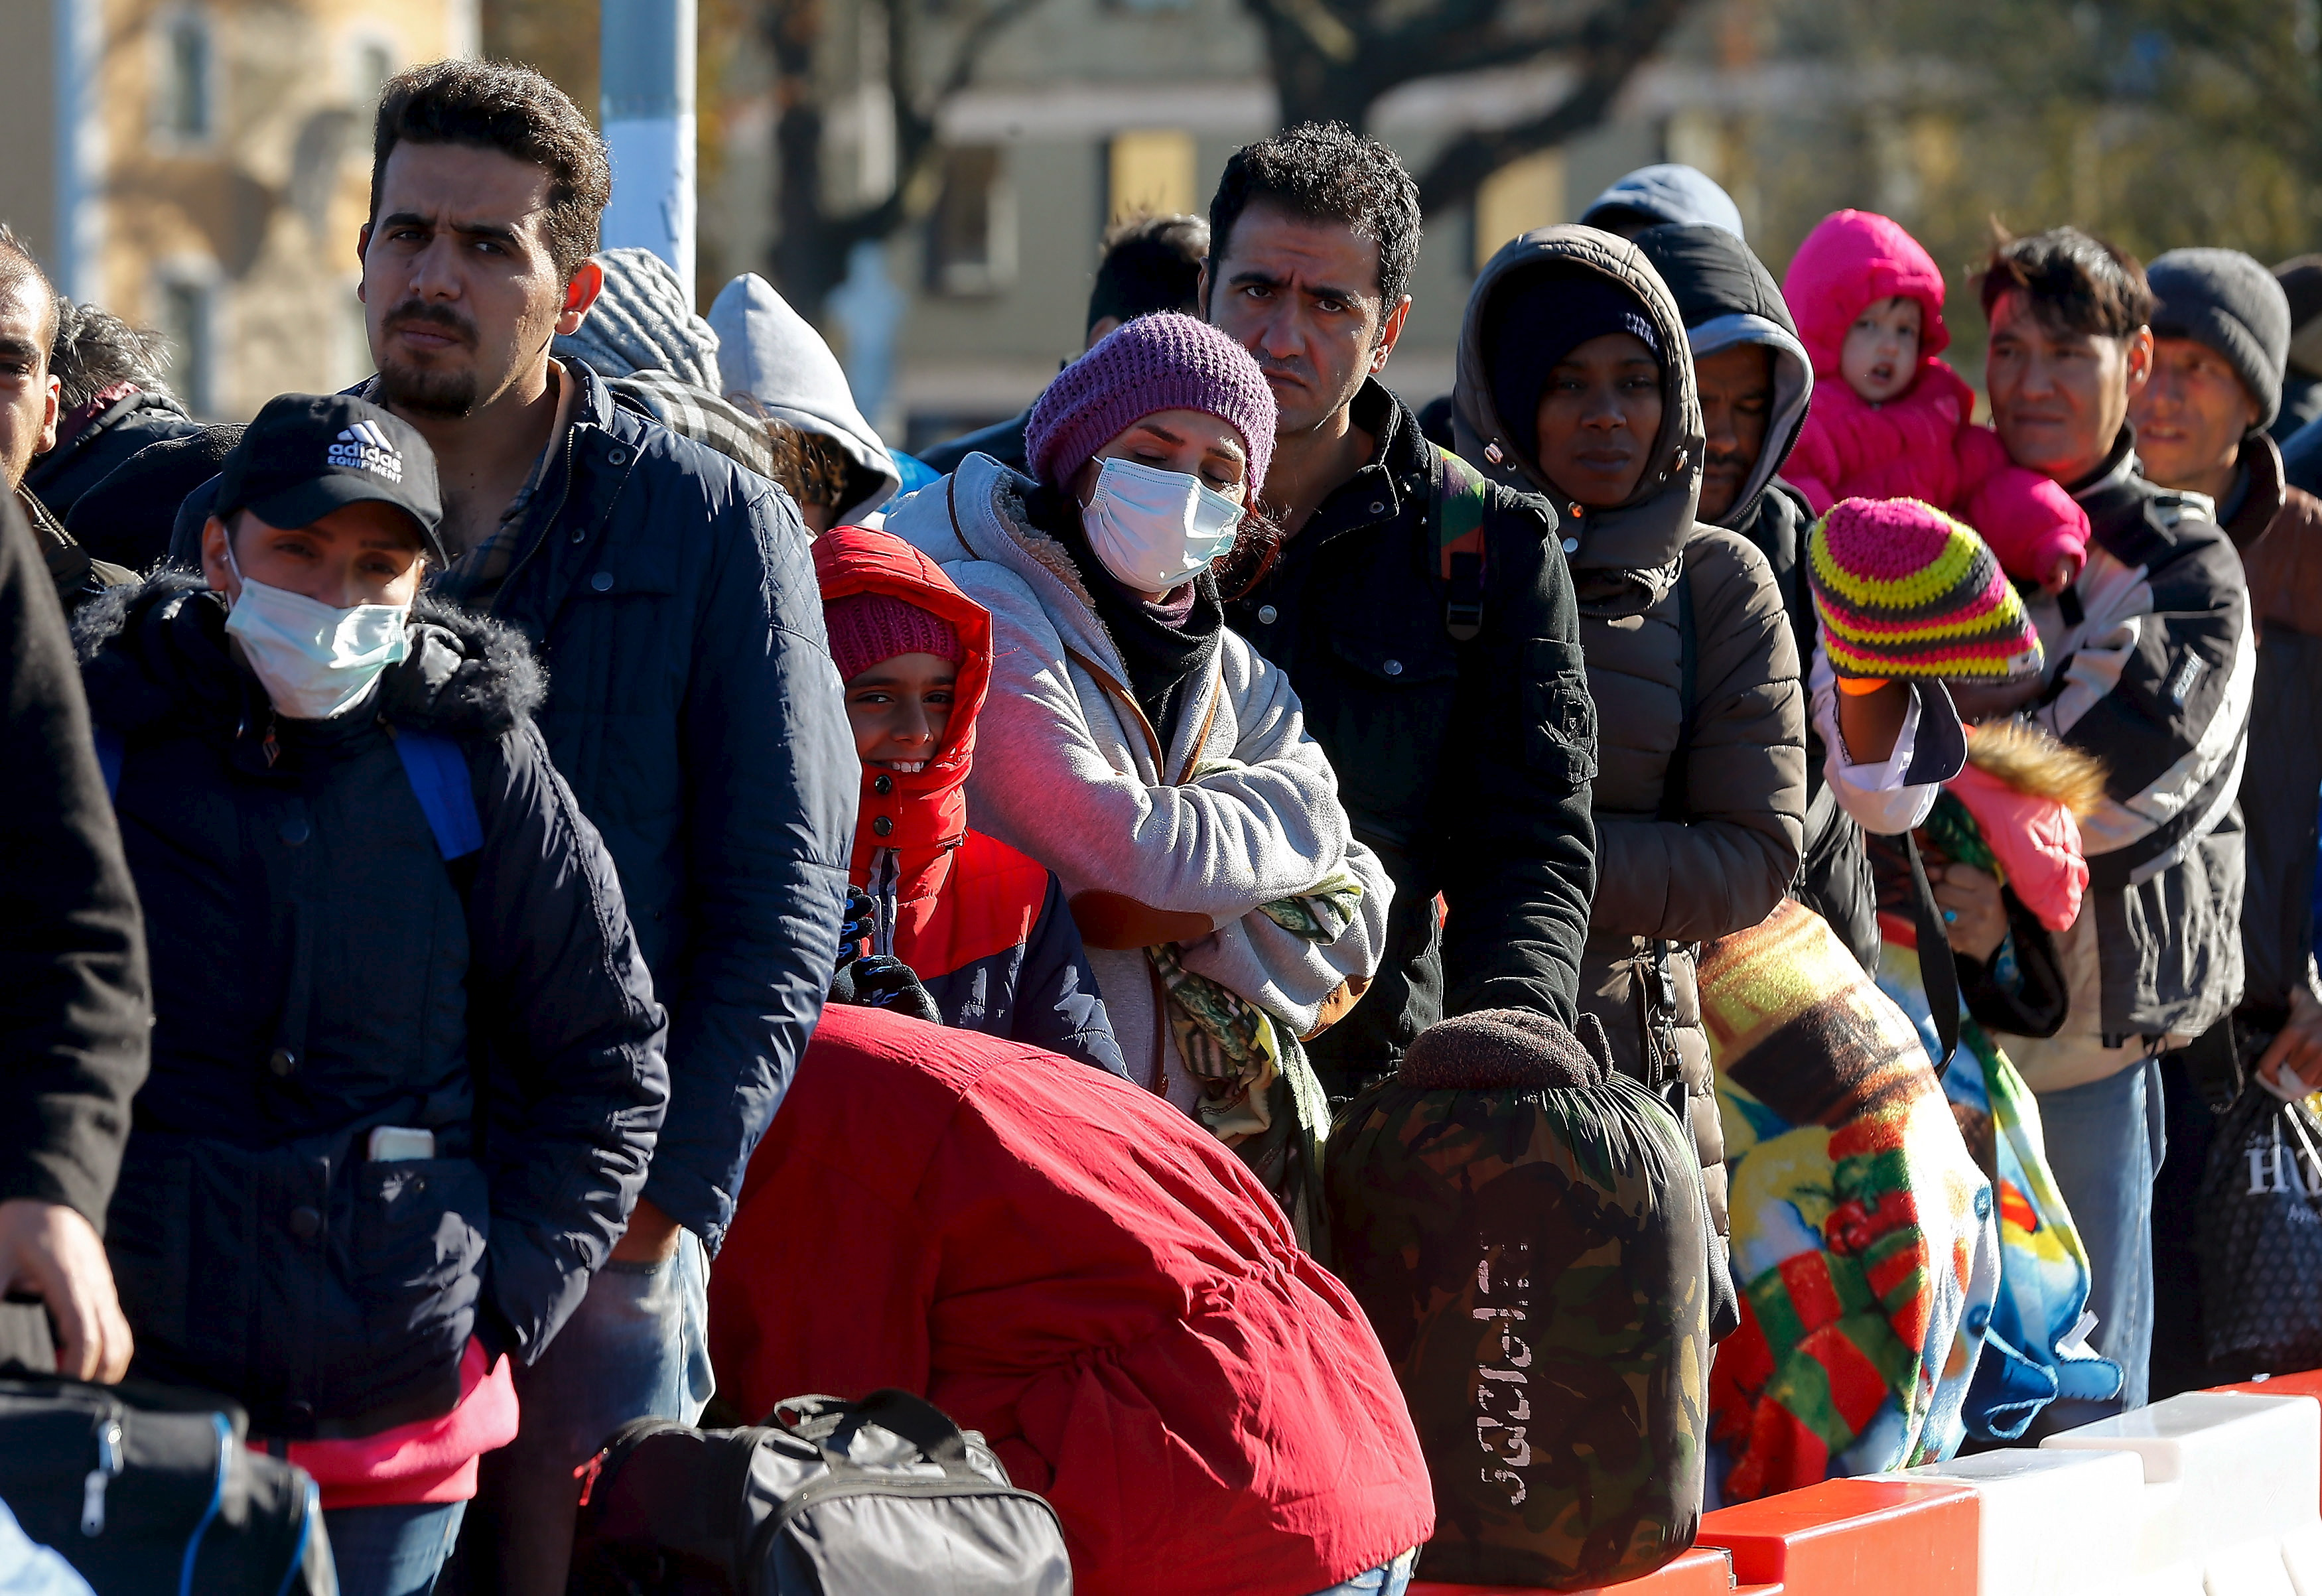 Pew: Nearly 20% of world's migrant population lives in the US